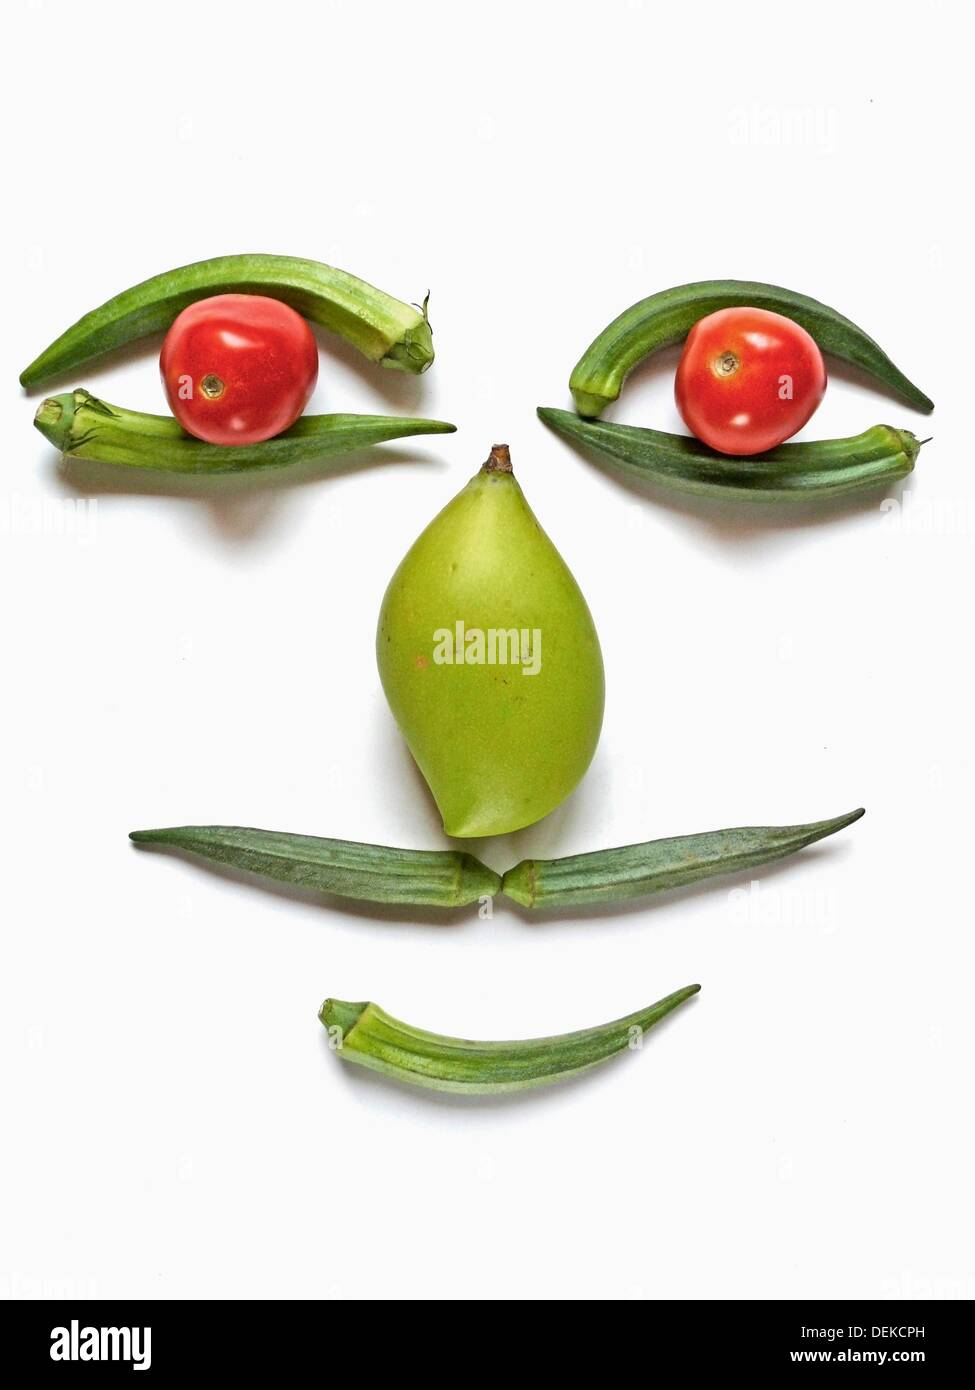 Amusing face made from vegetables Lady finger, tomatos and a mango are arranged in human face like shape Pune, Maharashtra, - Stock Image